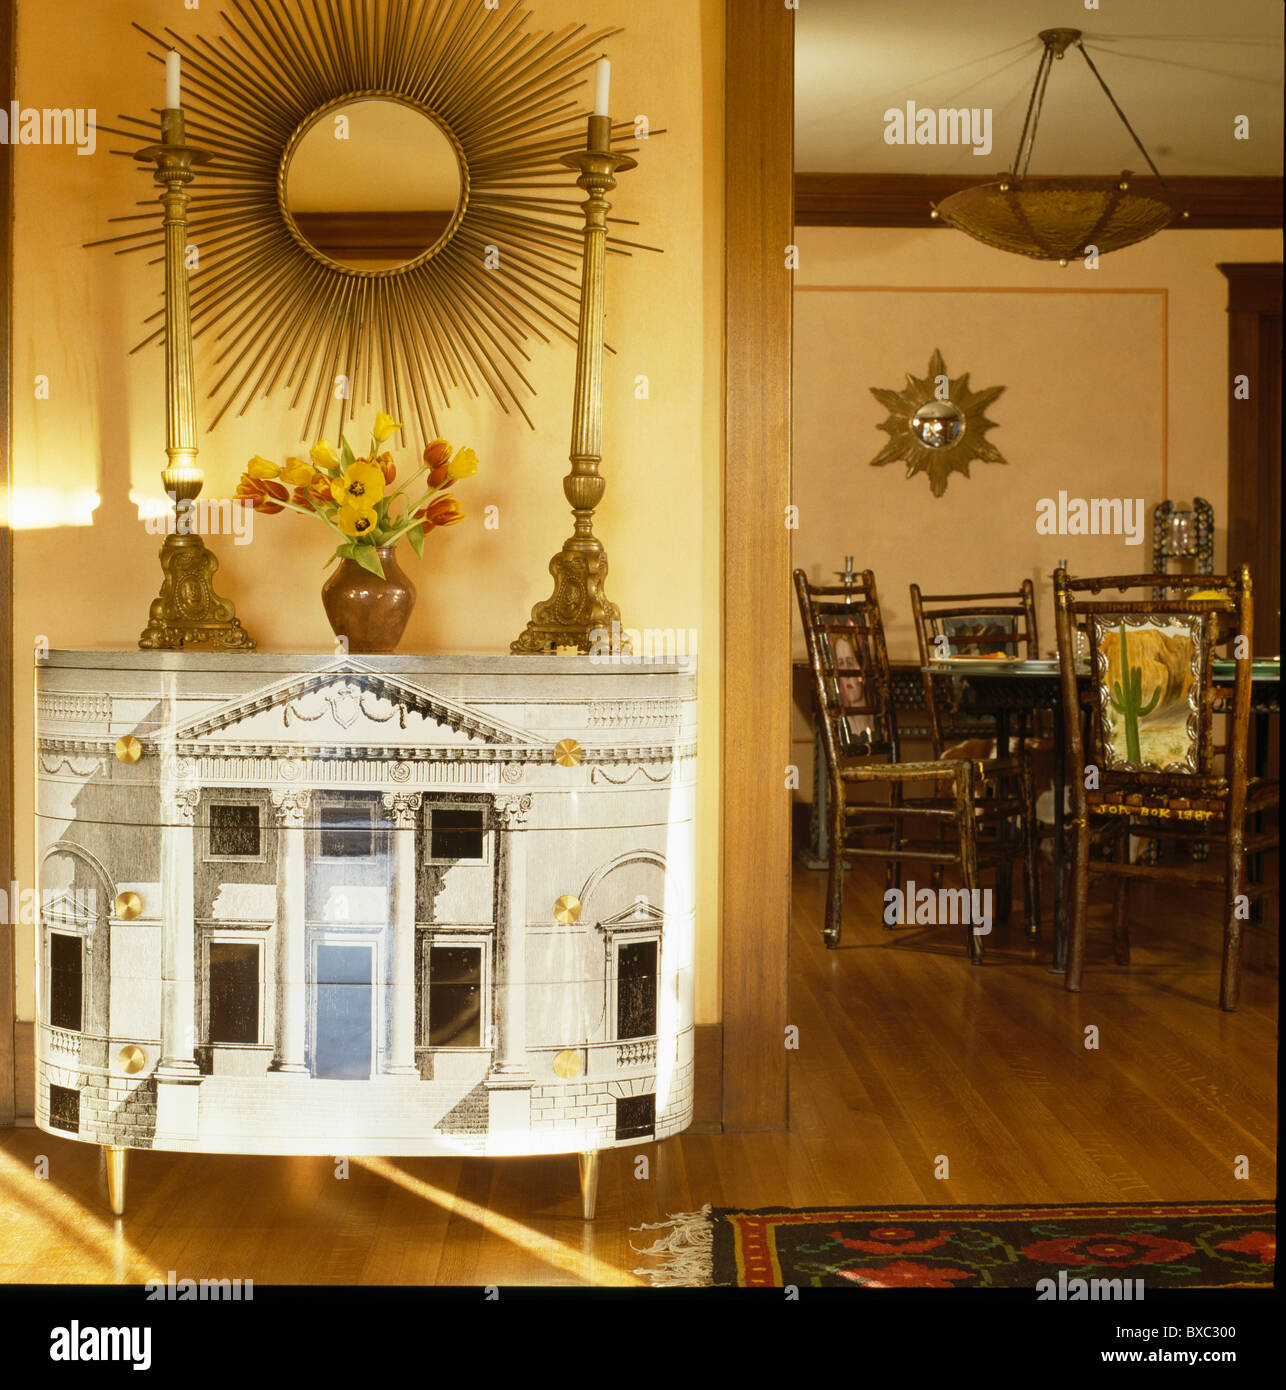 Gold sunburst mirror above Fornasetti cabinet with tall candlesticks in traditional dining room - Stock Image